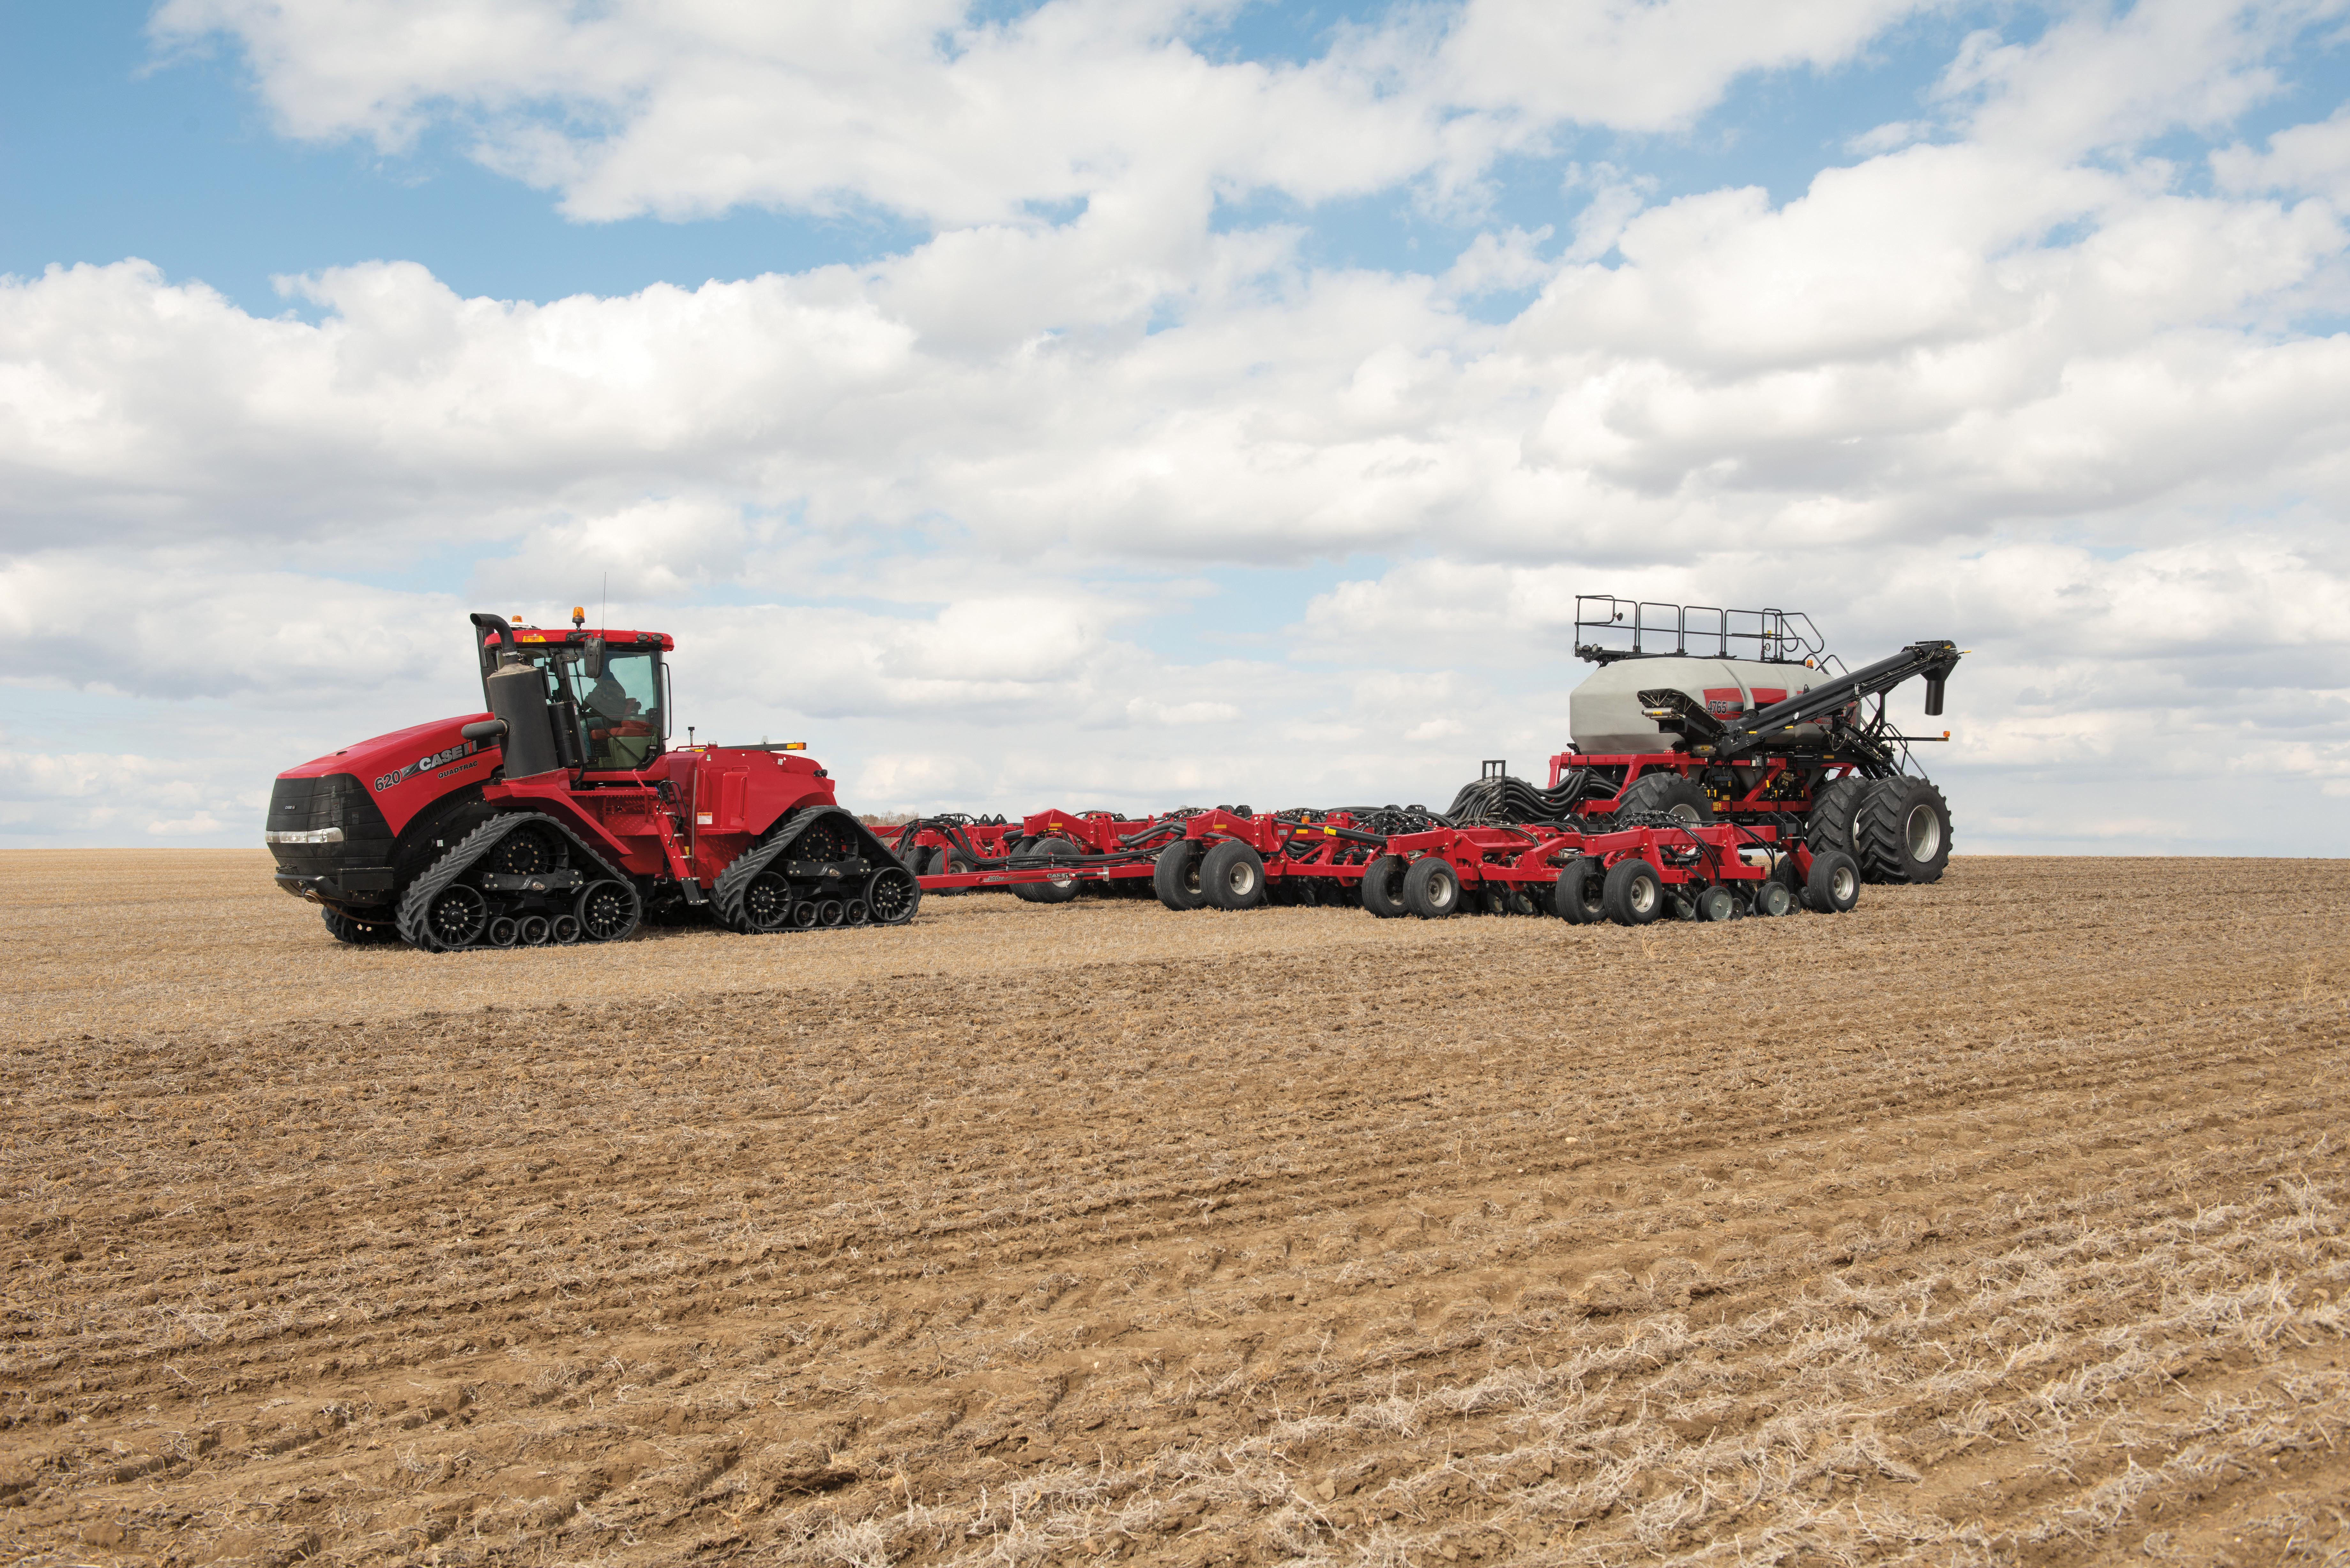 FFT – Seeding Equipment – Rocky Mountain Equipment – Case IH Quadtrac and Seeding Assembly